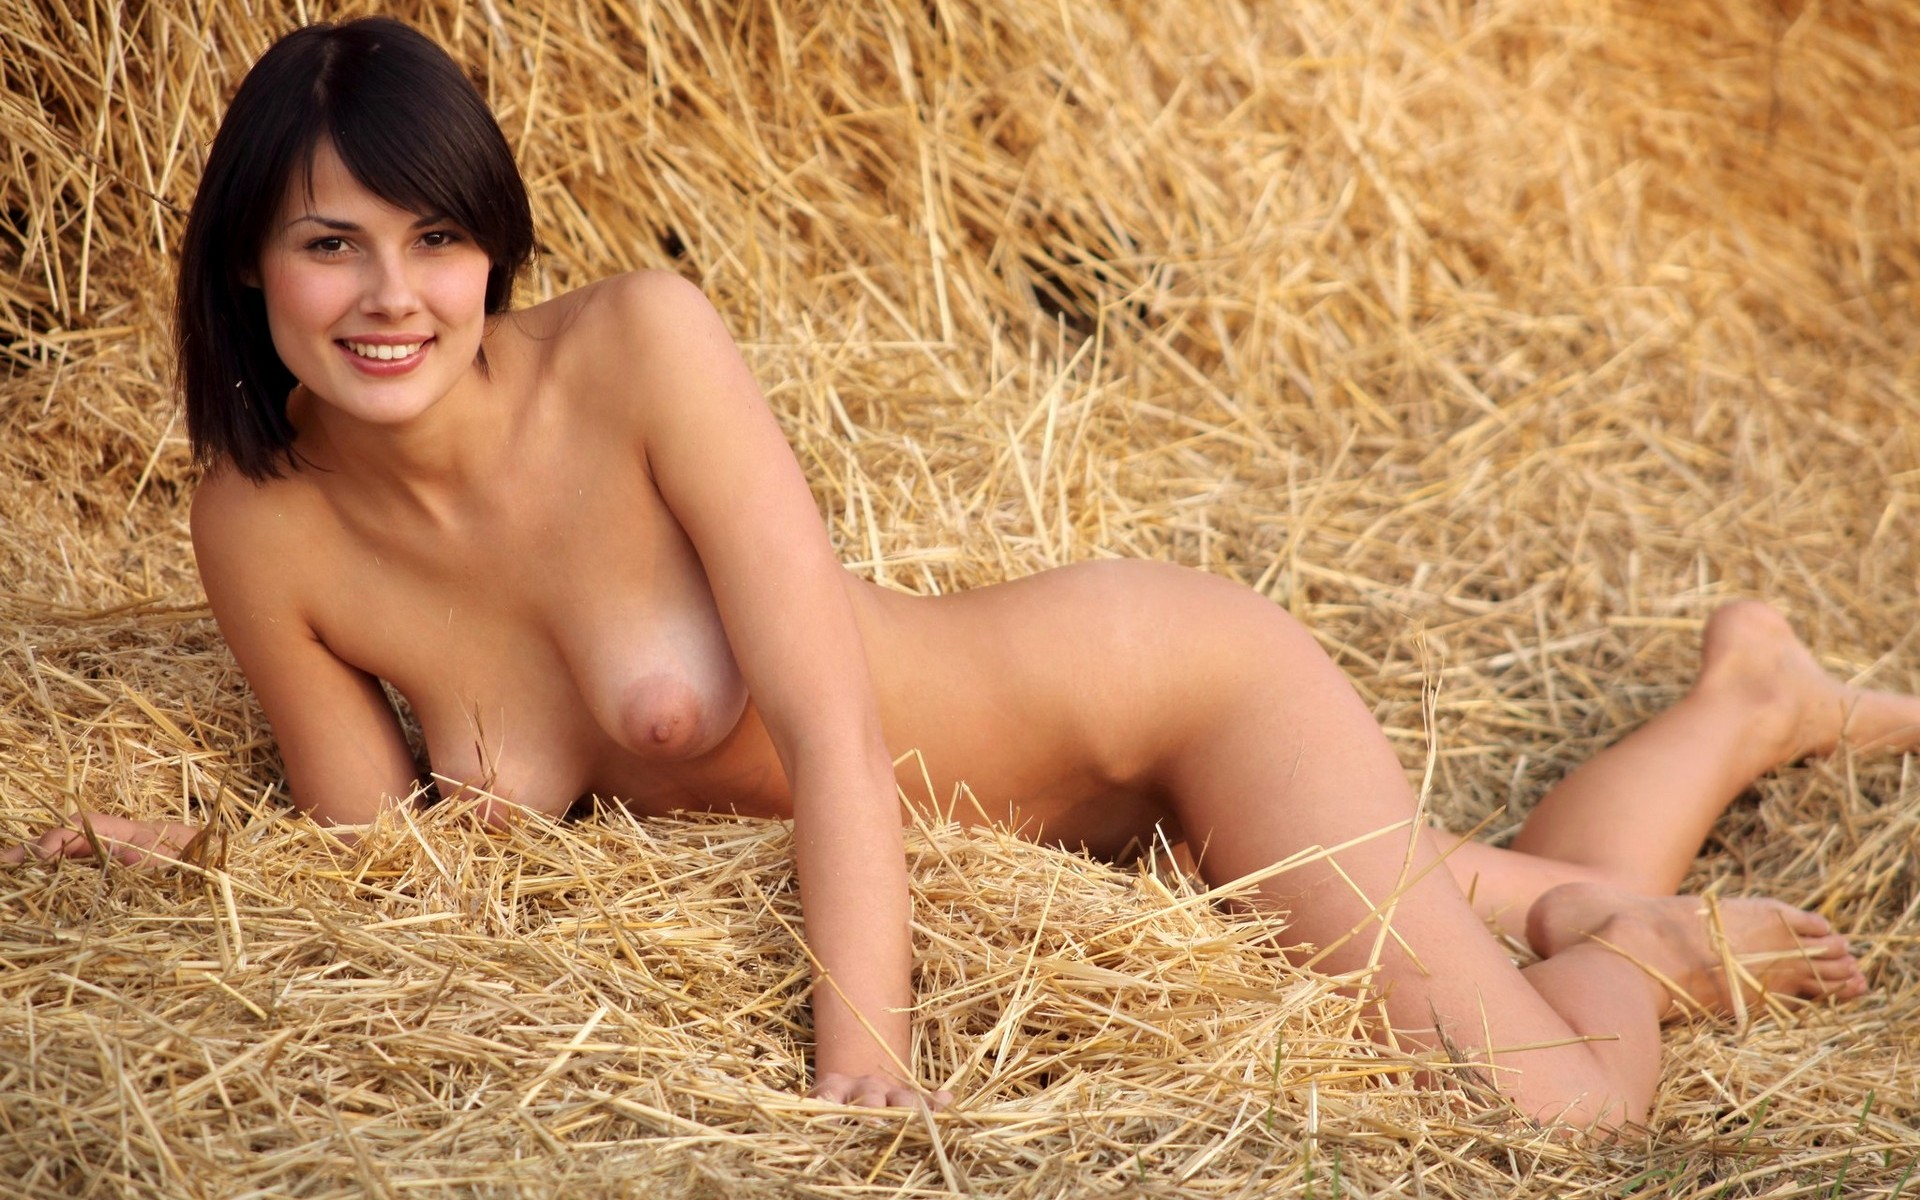 nude-girl-farm-field